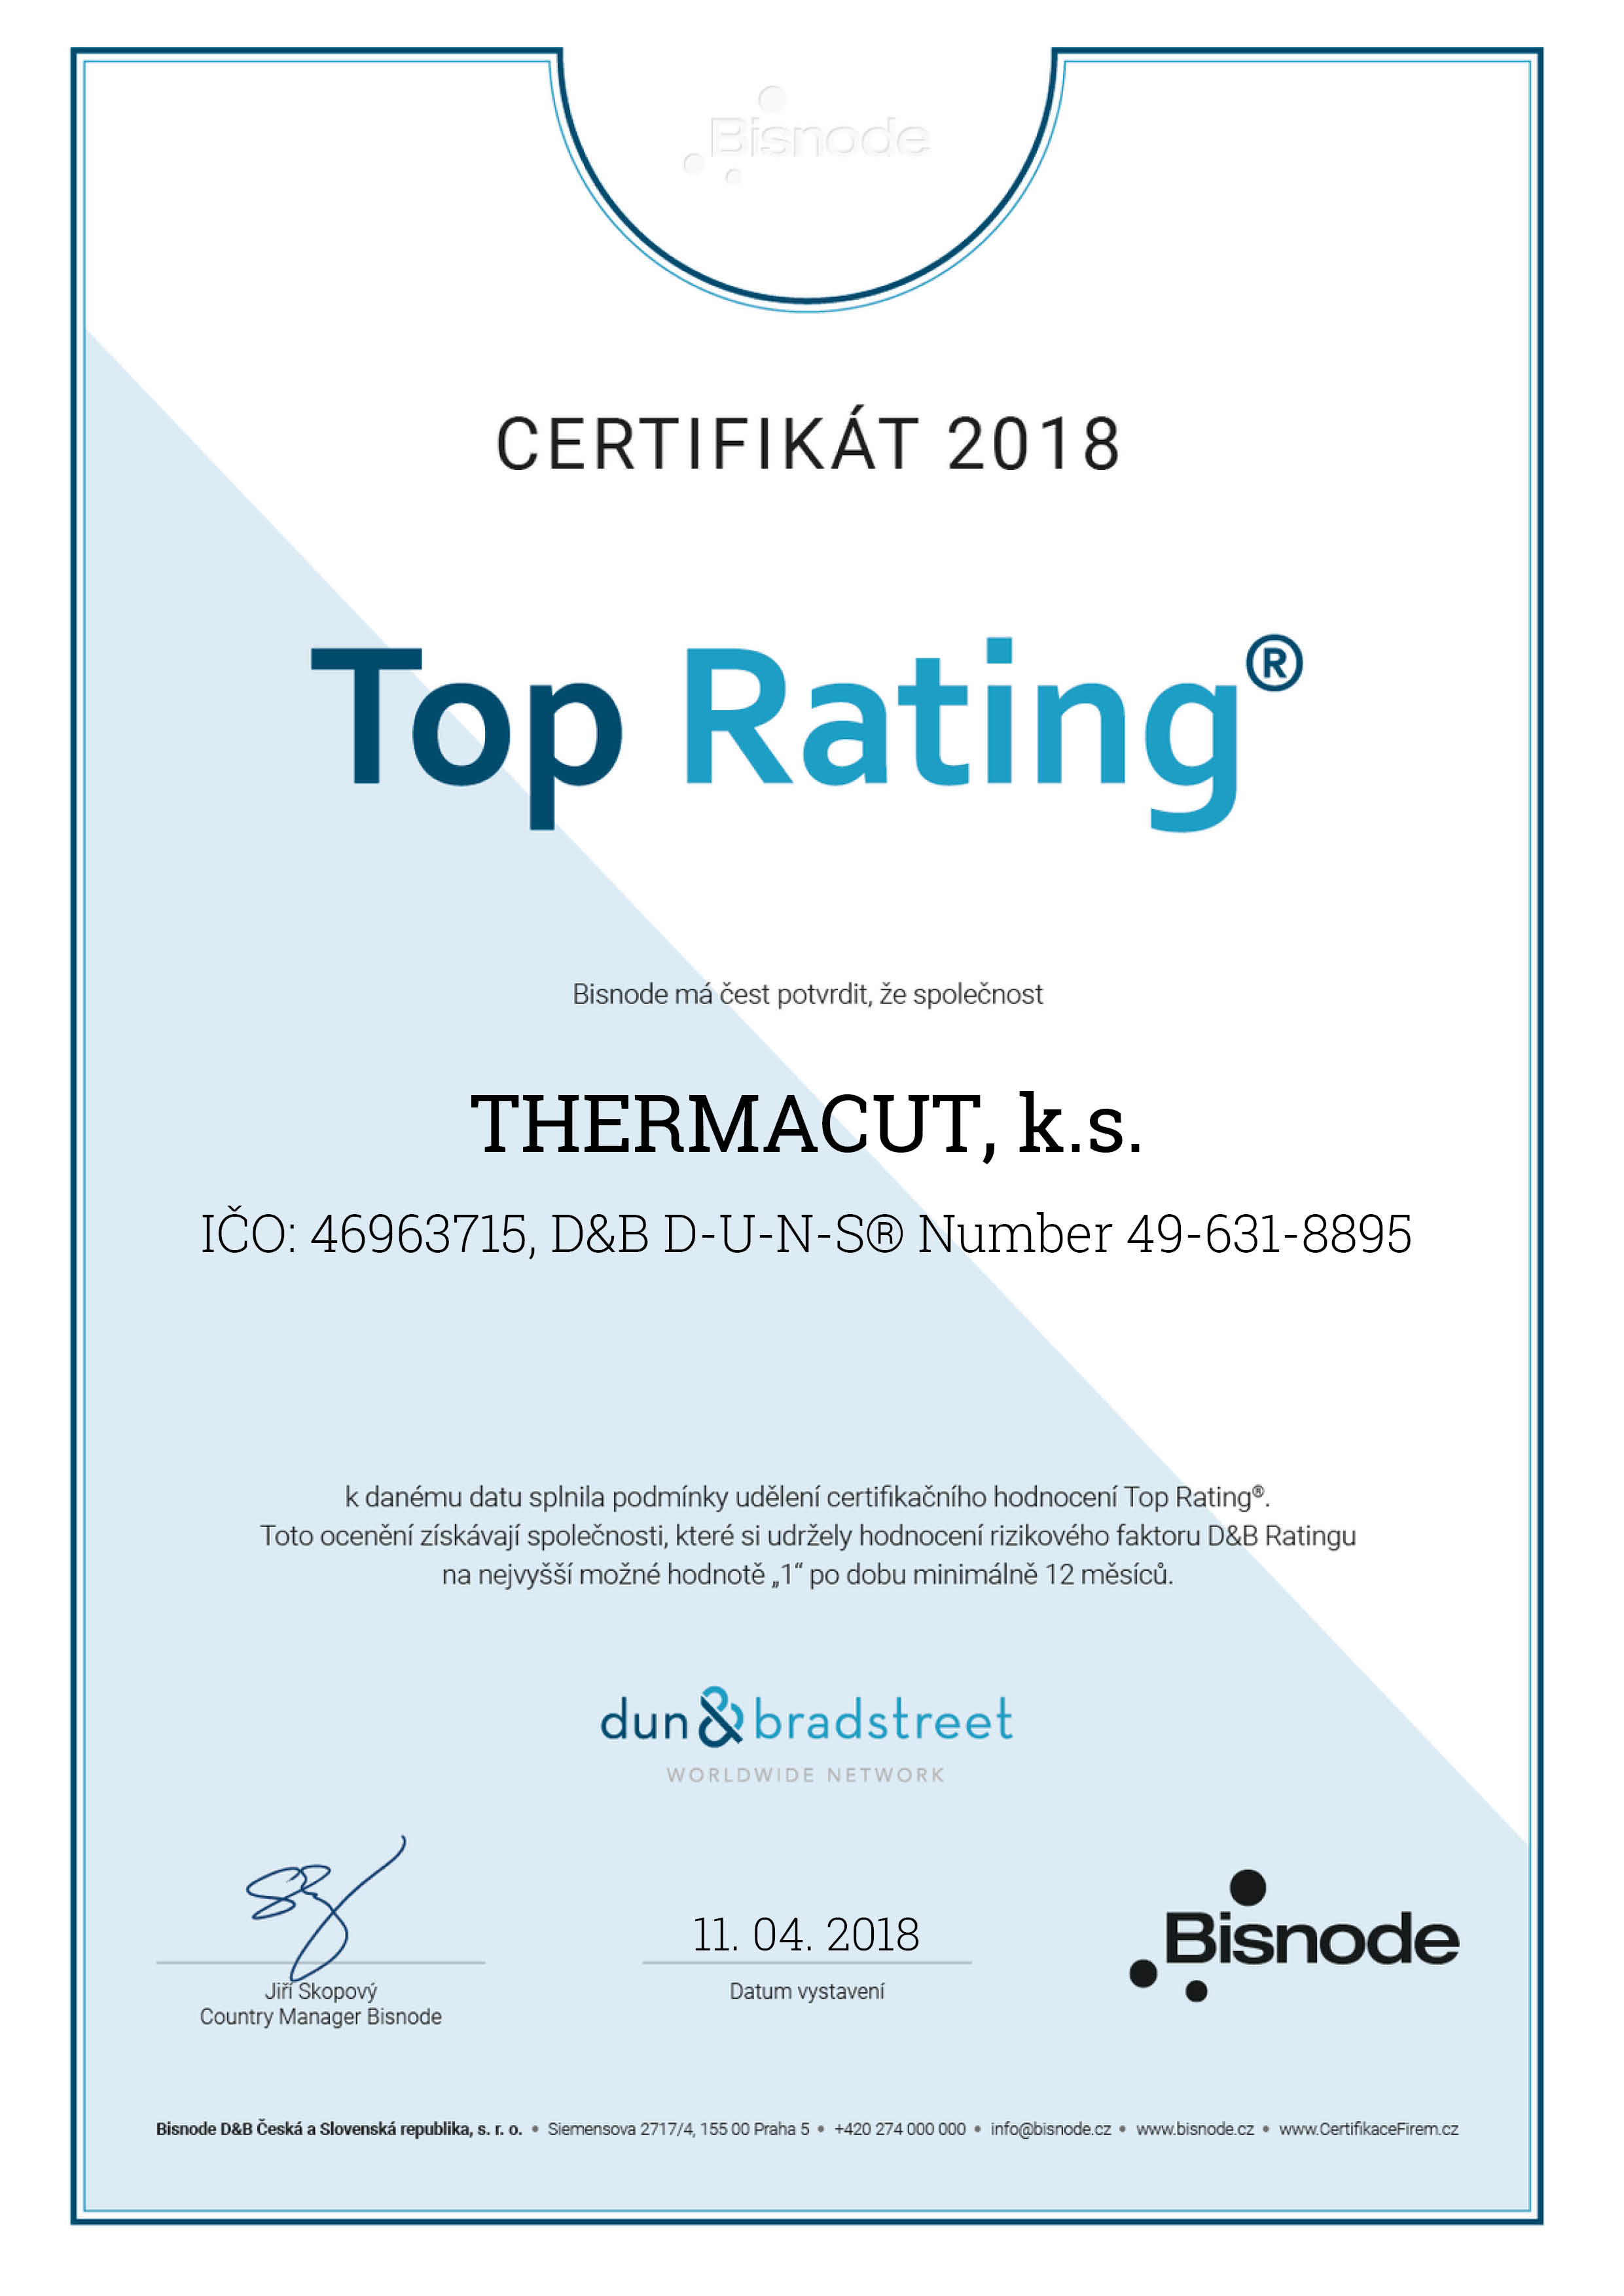 top rating certificate cz 2018